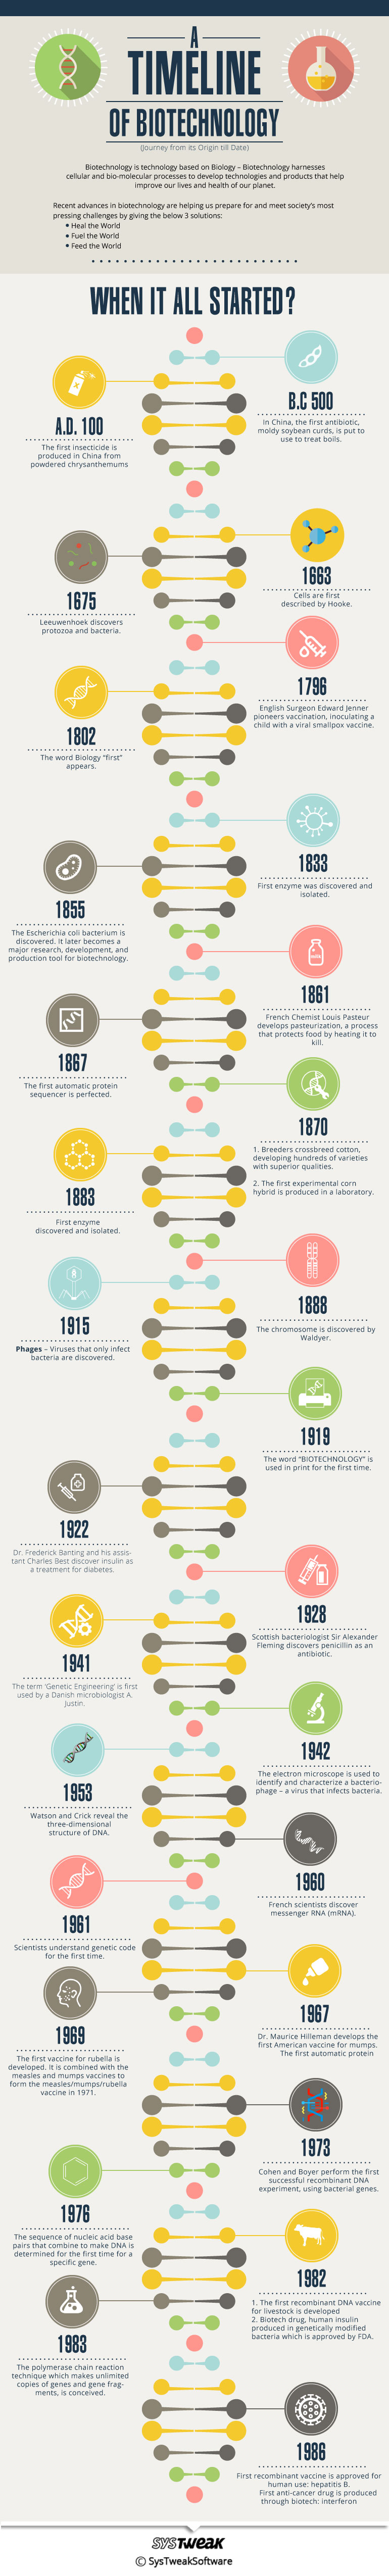 timeline-biotechnology-infographic